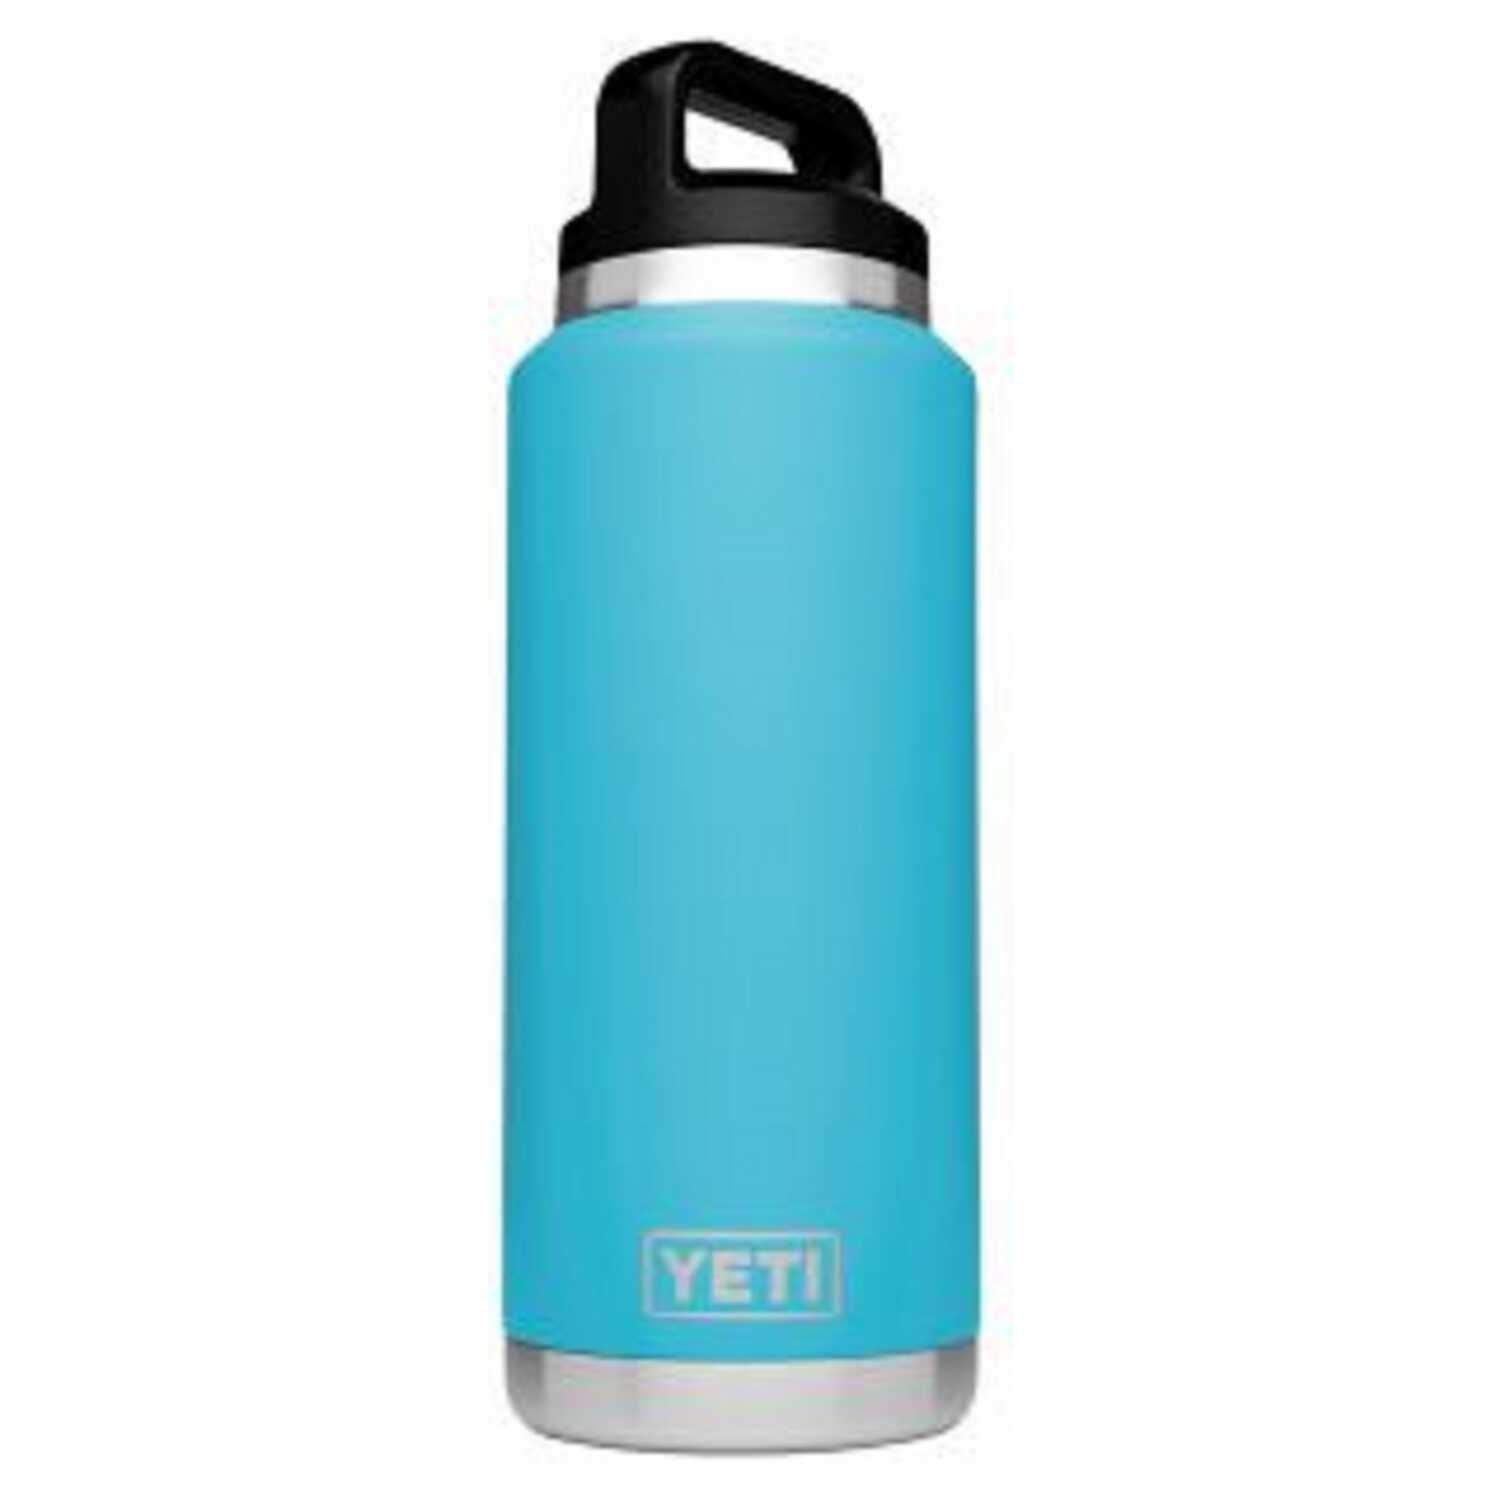 YETI  Reef Blue  Stainless Steel  Insulated Bottle  BPA Free 36 oz.